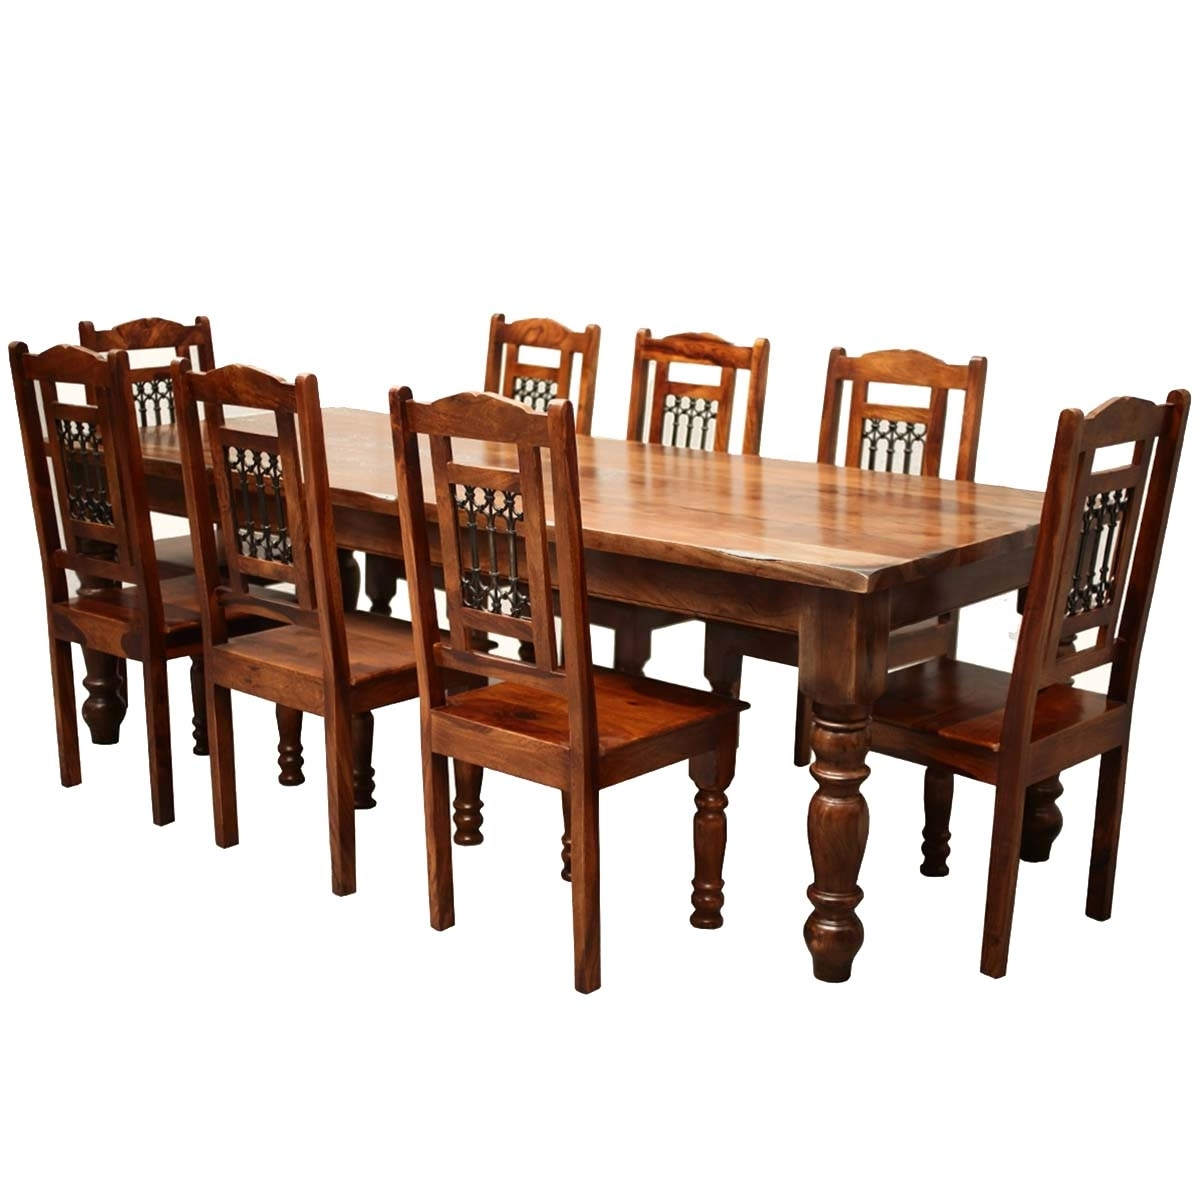 Most Up To Date Rustic Furniture Solid Wood Large Dining Table & 8 Chair Set Intended For Dining Tables 8 Chairs (View 3 of 25)